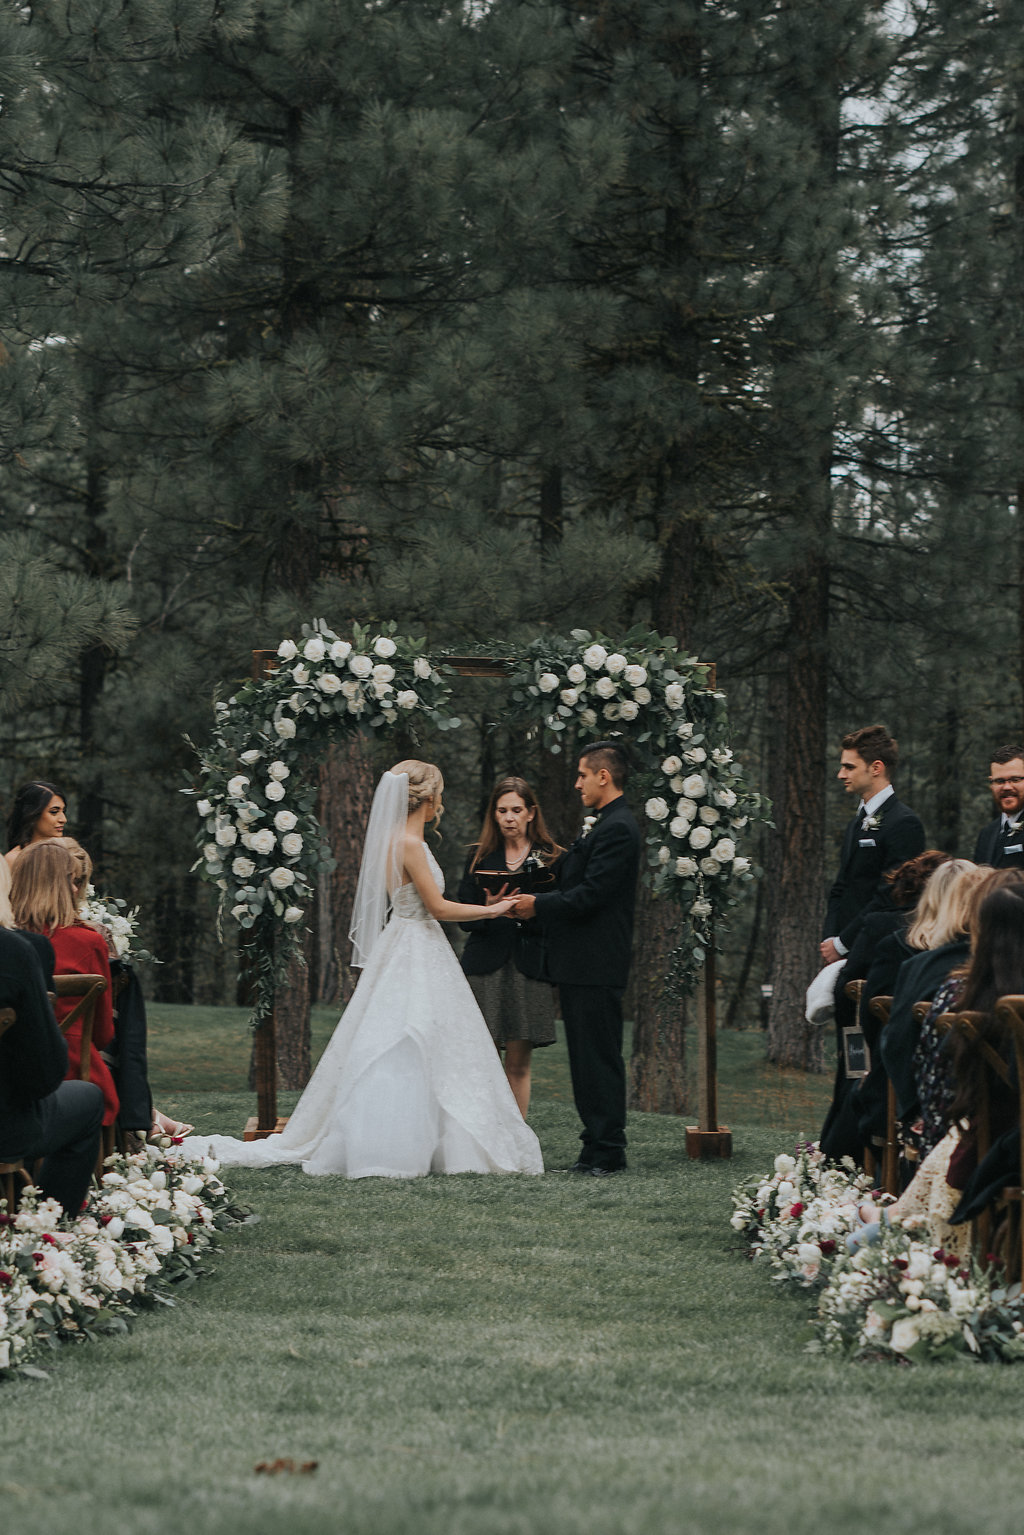 Woodland Wedding Ceremony with Romantic Garden Flowers